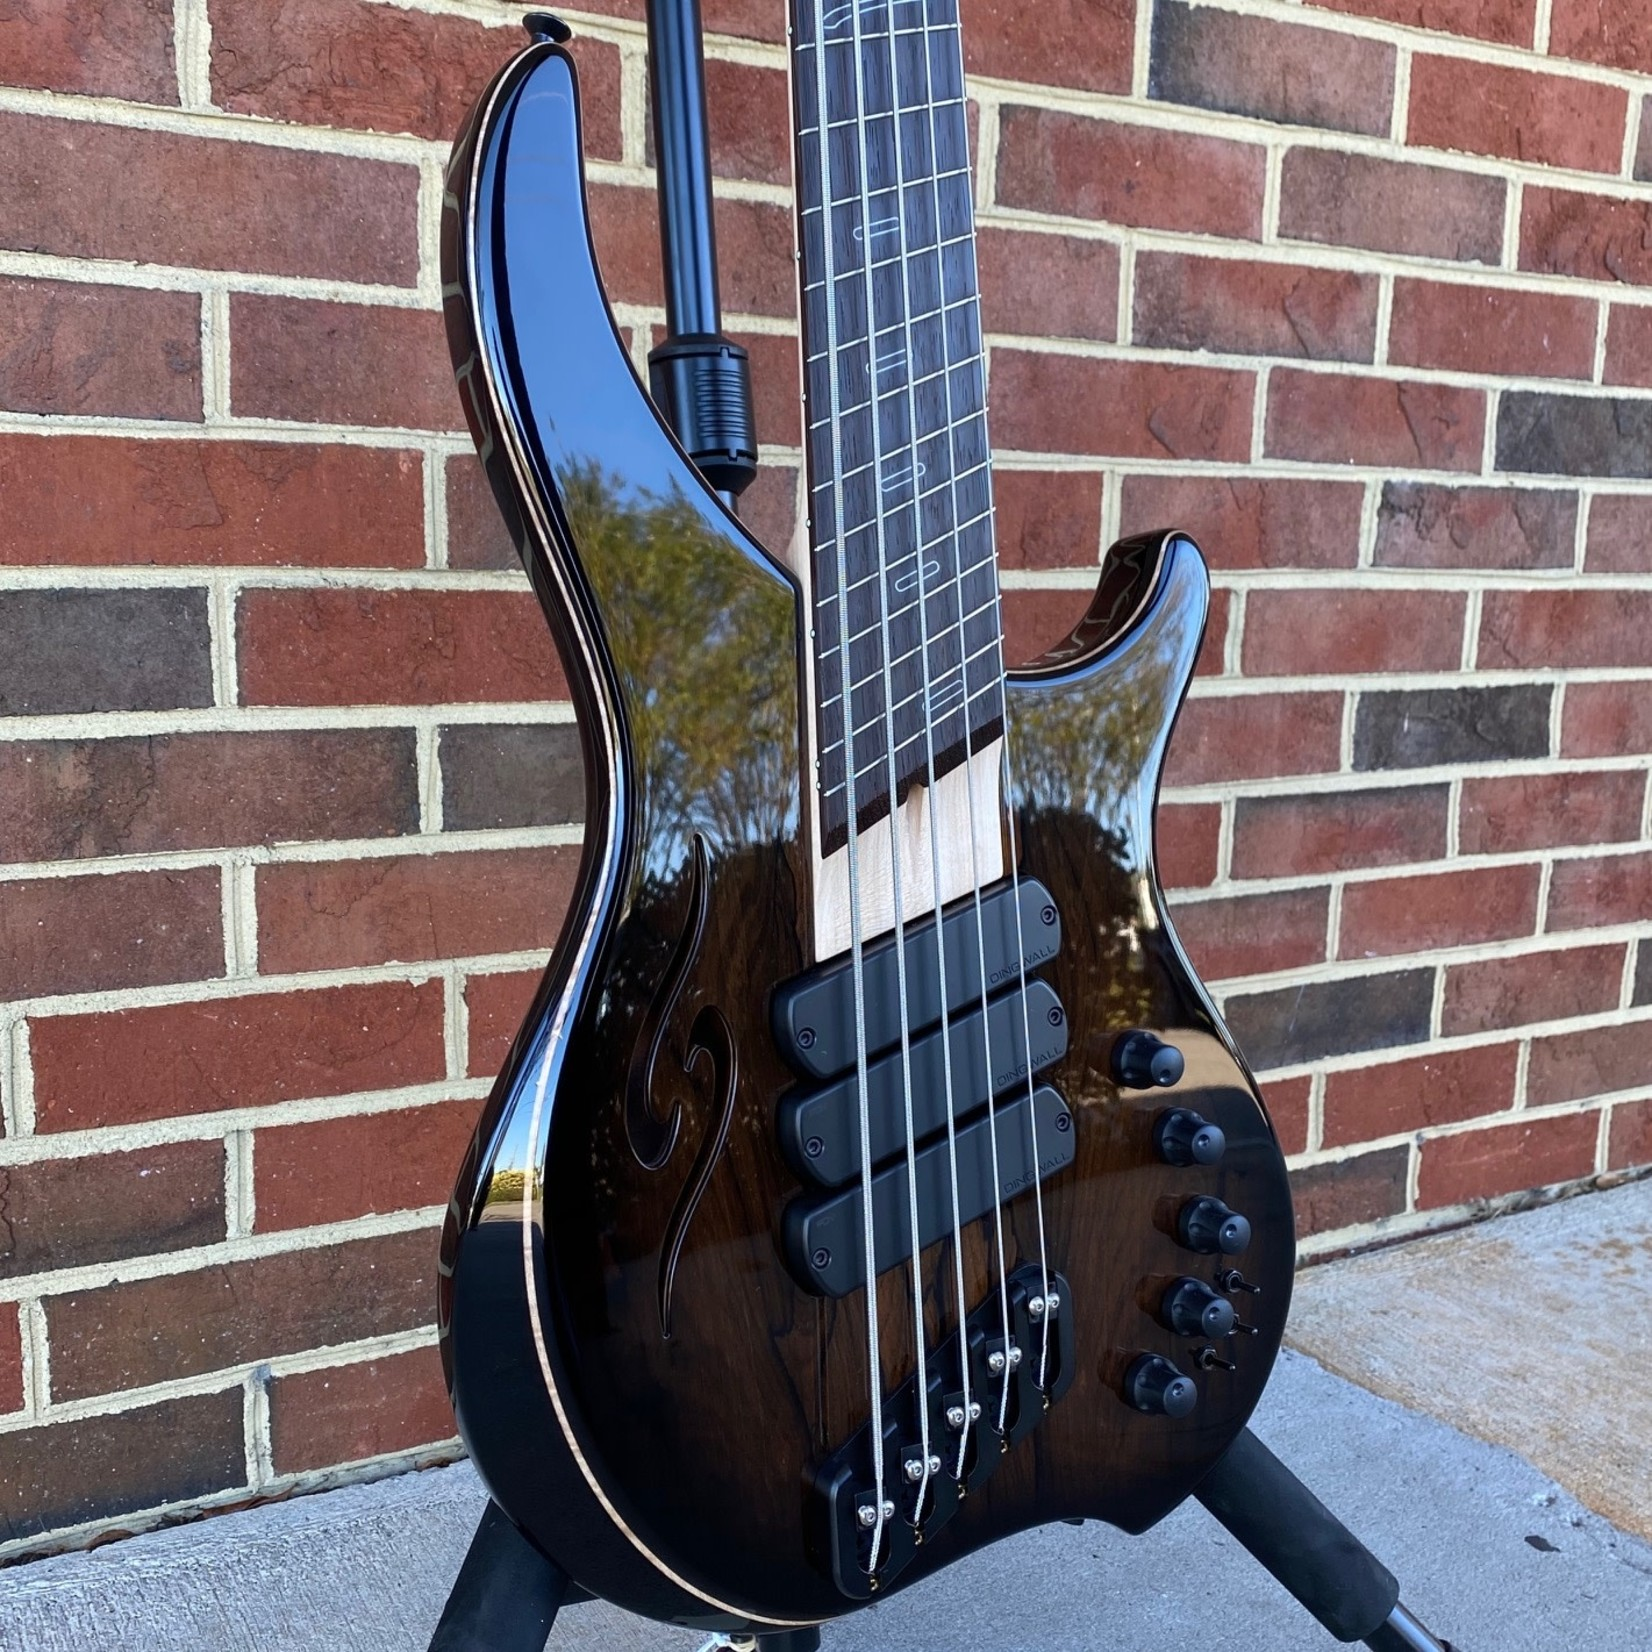 Dingwall Dingwall ABII Custom 5, Afterburner II 5-String, Ziricote X-Top, Flamed Maple Contrast Layer, Trans Black Burst, Semi-Hollow, 3x Pickups, Glockenklang Preamp w/ Toggles, Maple Neck, Wenge Fretboard, Ghost Speedo Bars Inlay, Blue Luminlay Side Markers, Din